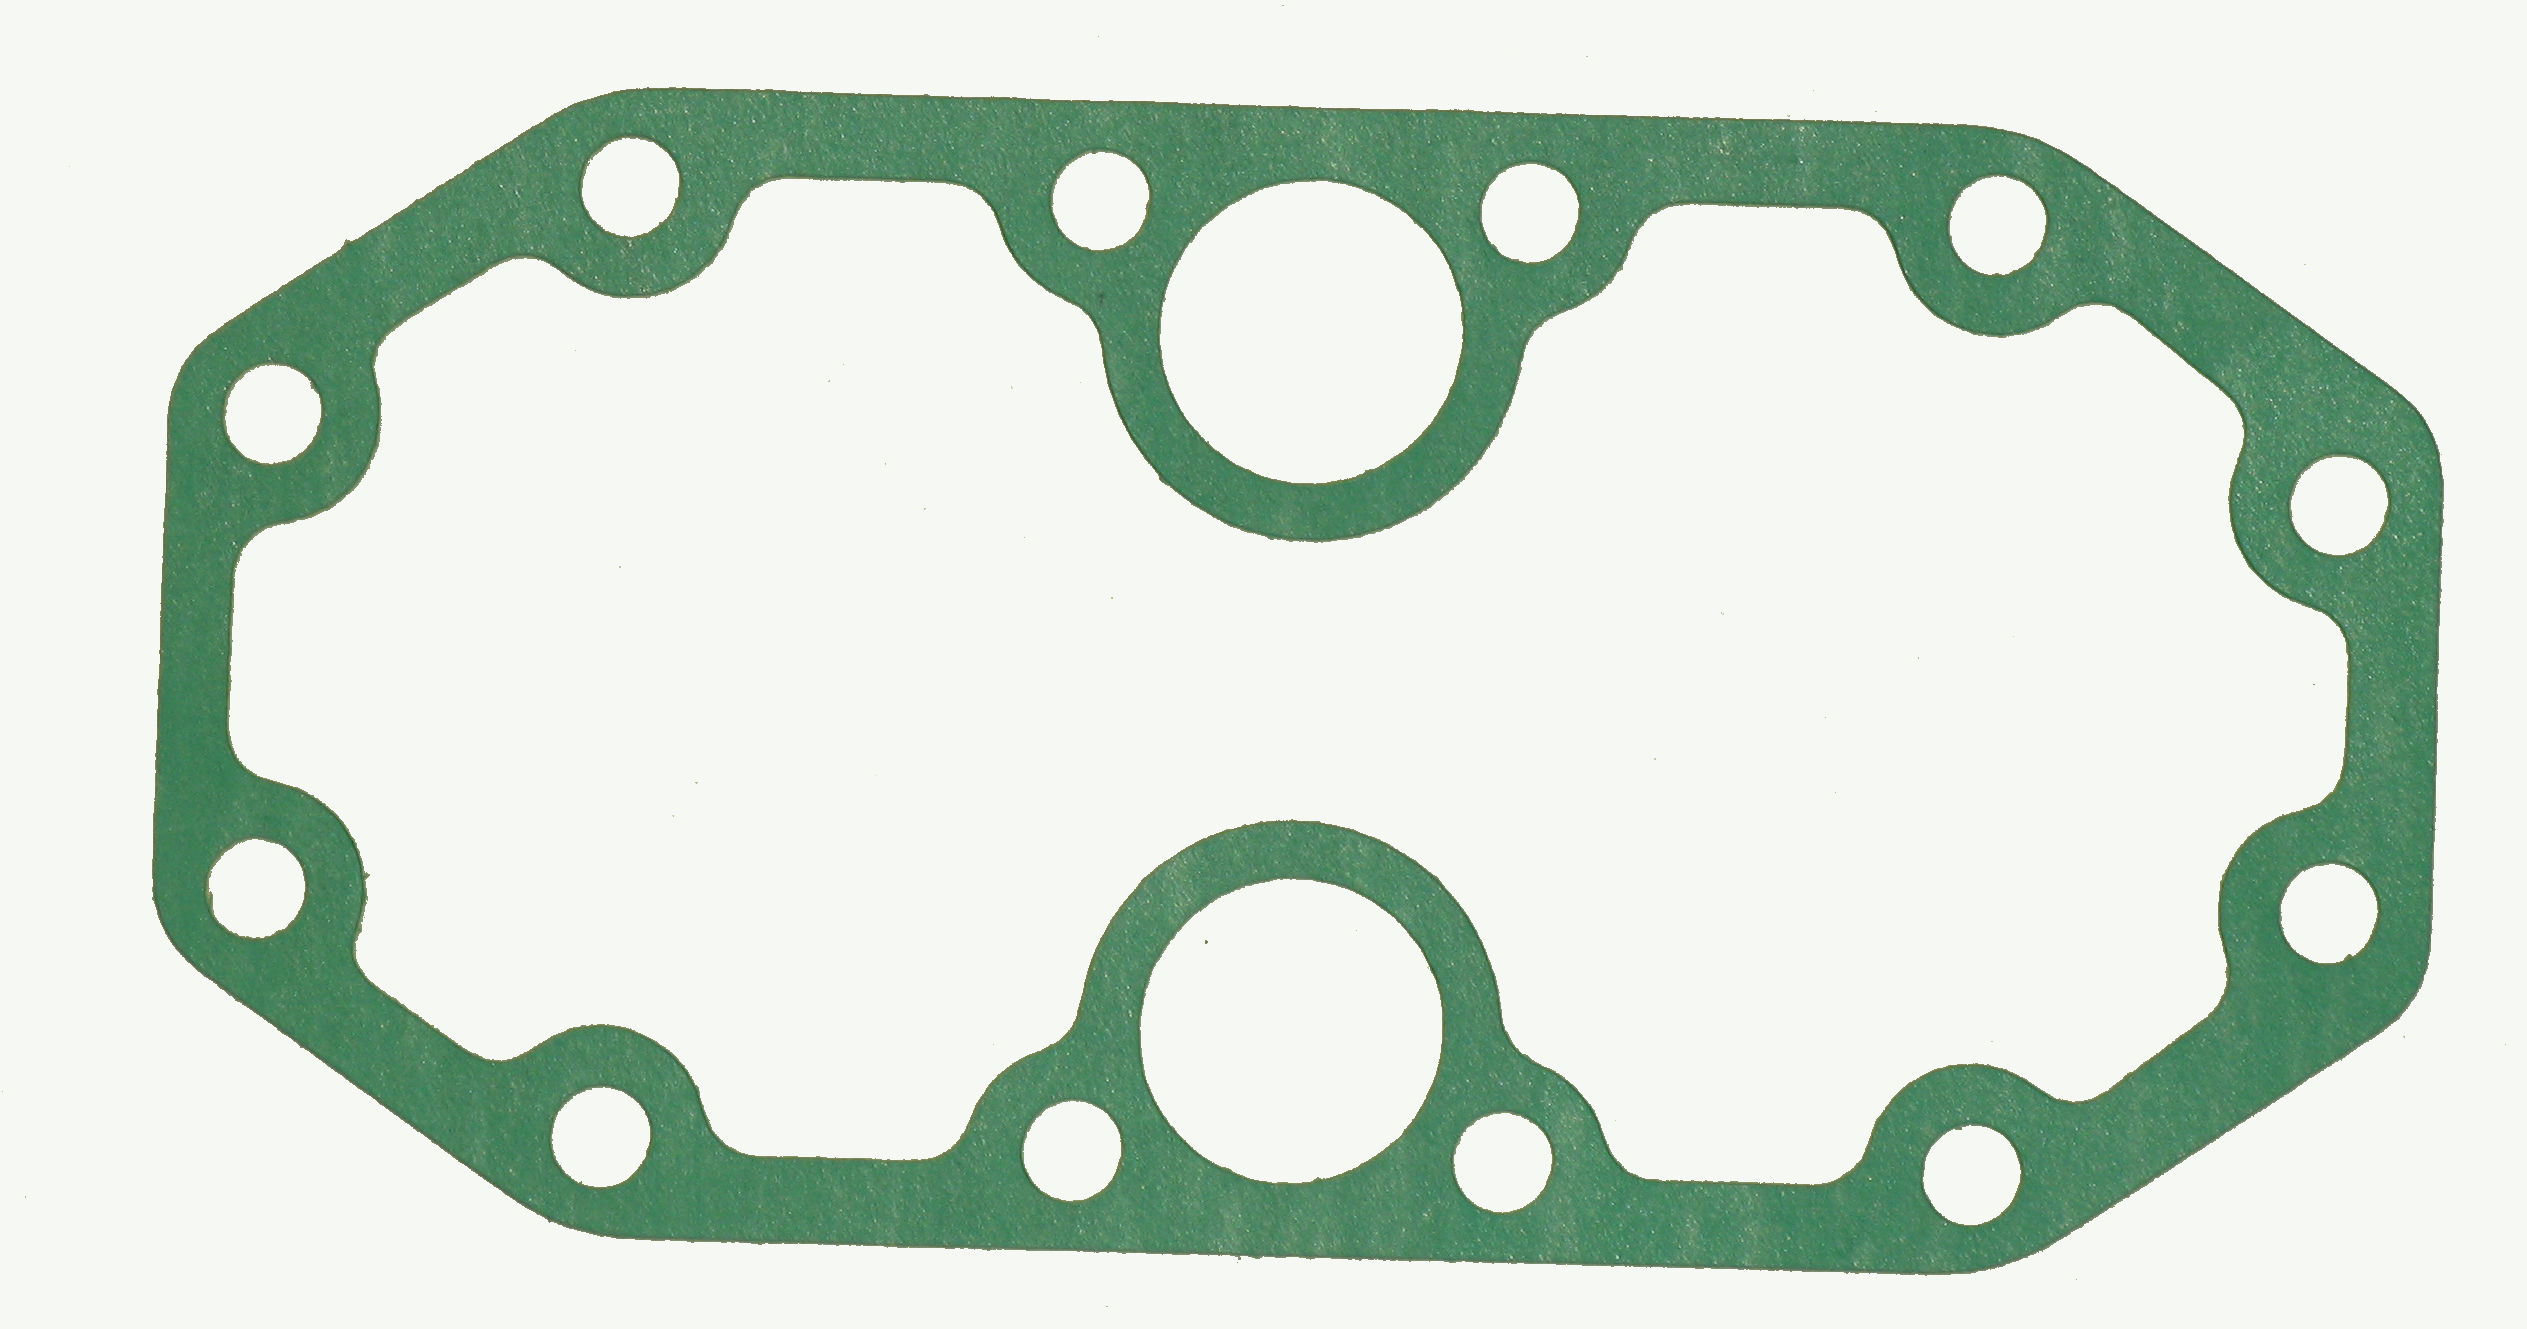 GKT-6386 Gasket; R/N GKT-921 (Made in the USA)